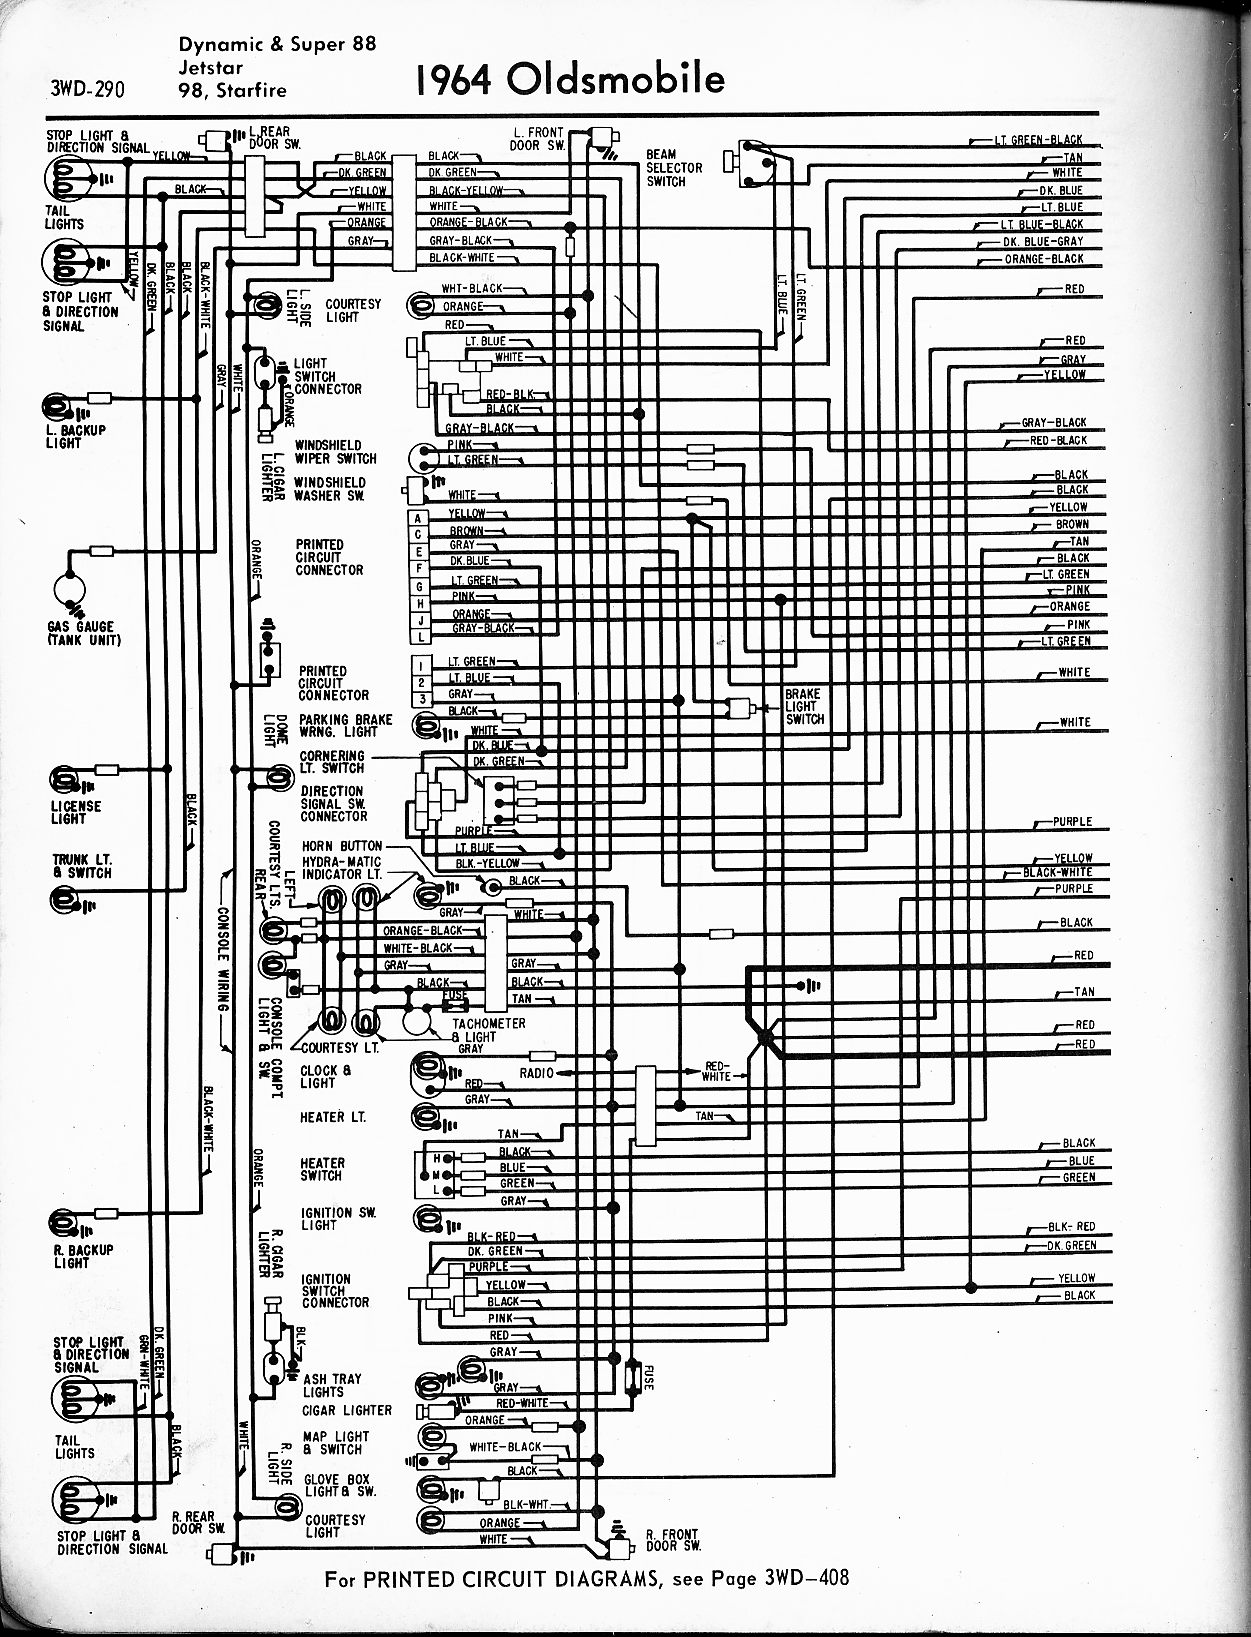 1964 oldsmobile 88 wiring diagram get free image about wiring diagram